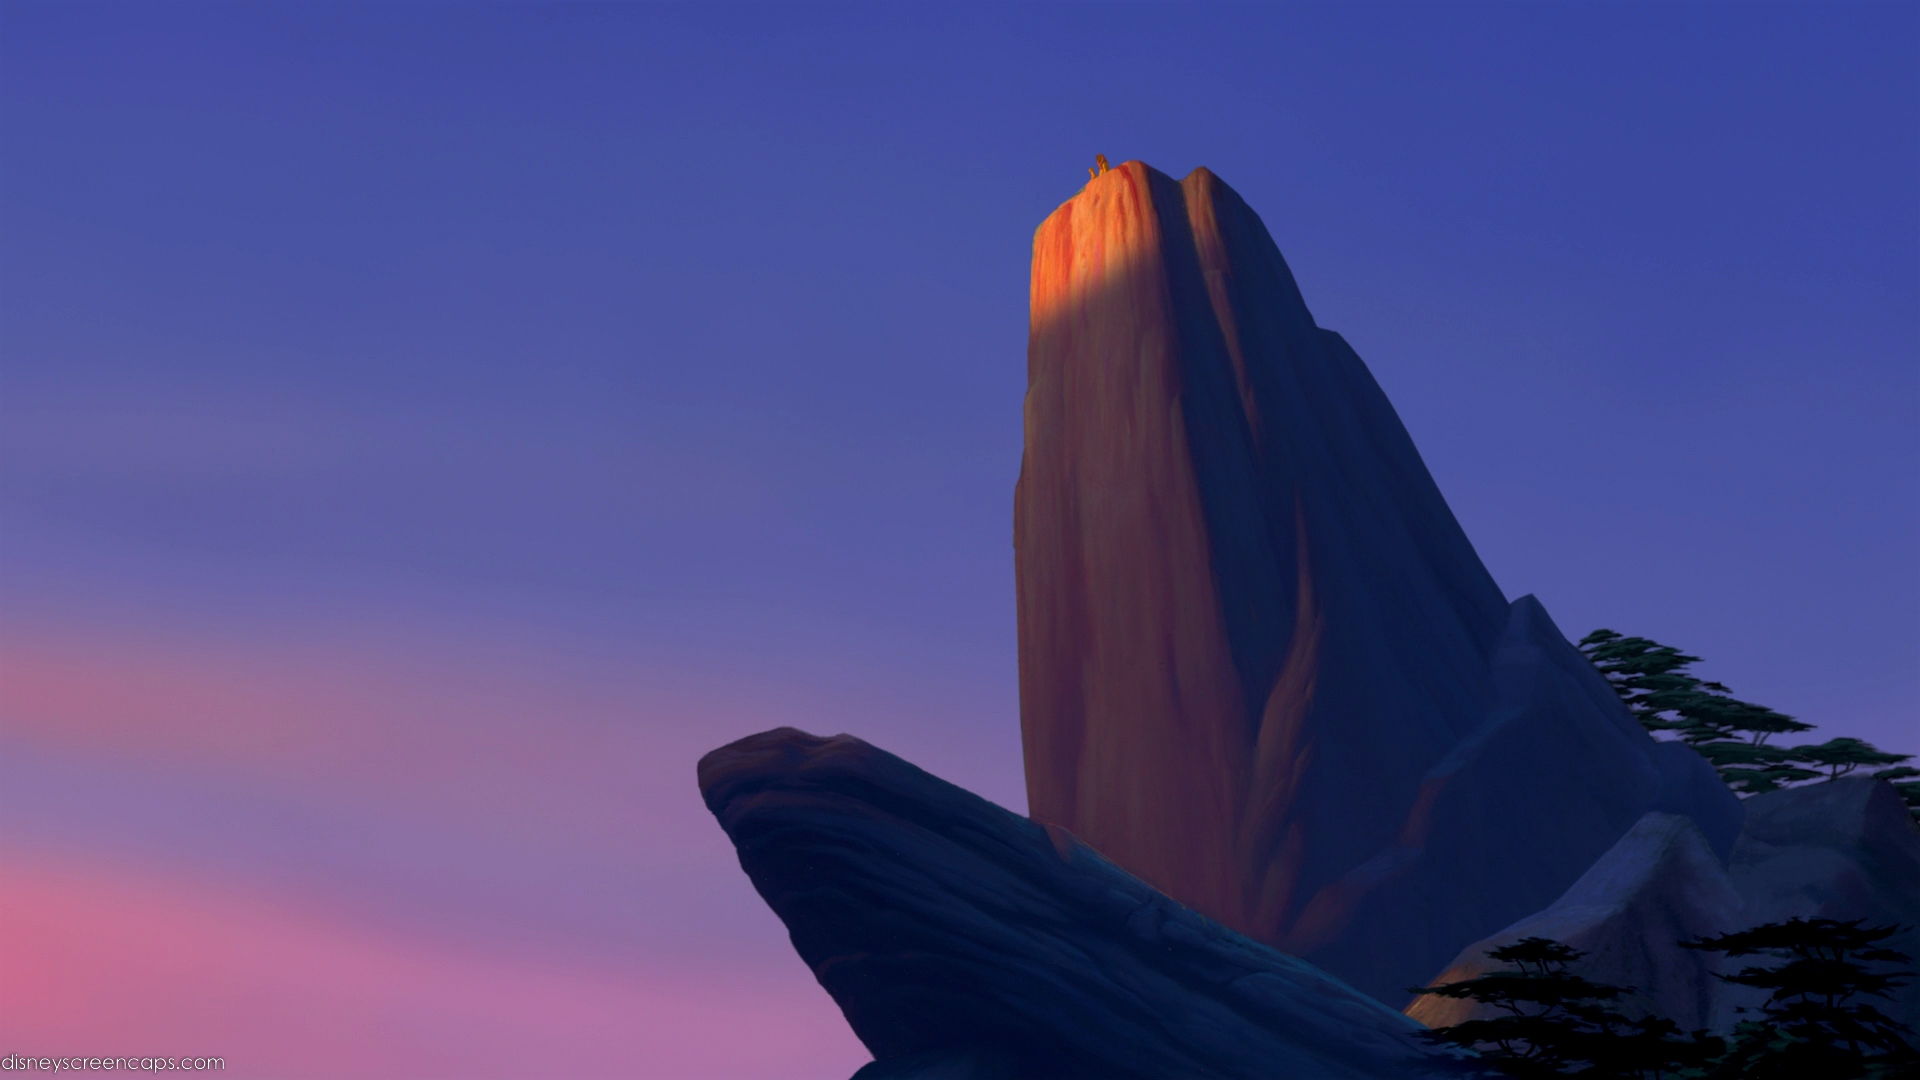 Lion king pride rock scene - photo#21